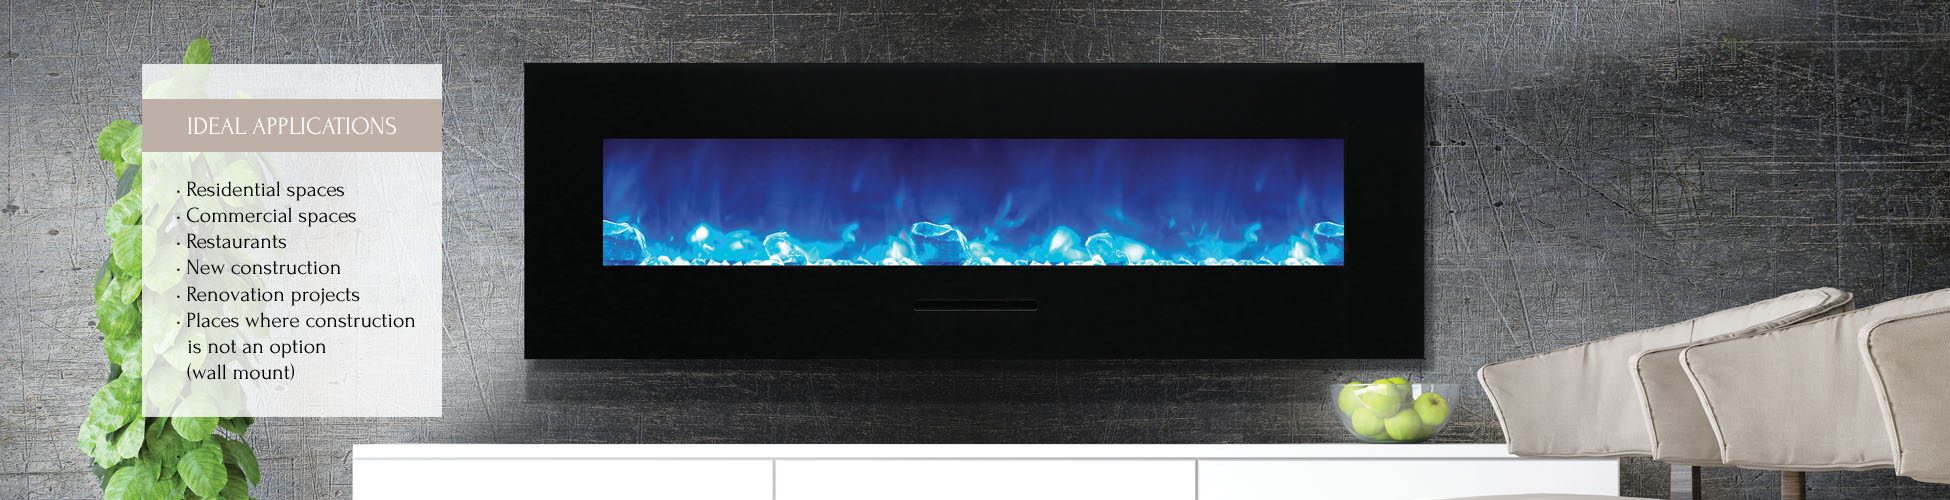 WM-FM-60-7023-BG linear electric fireplace